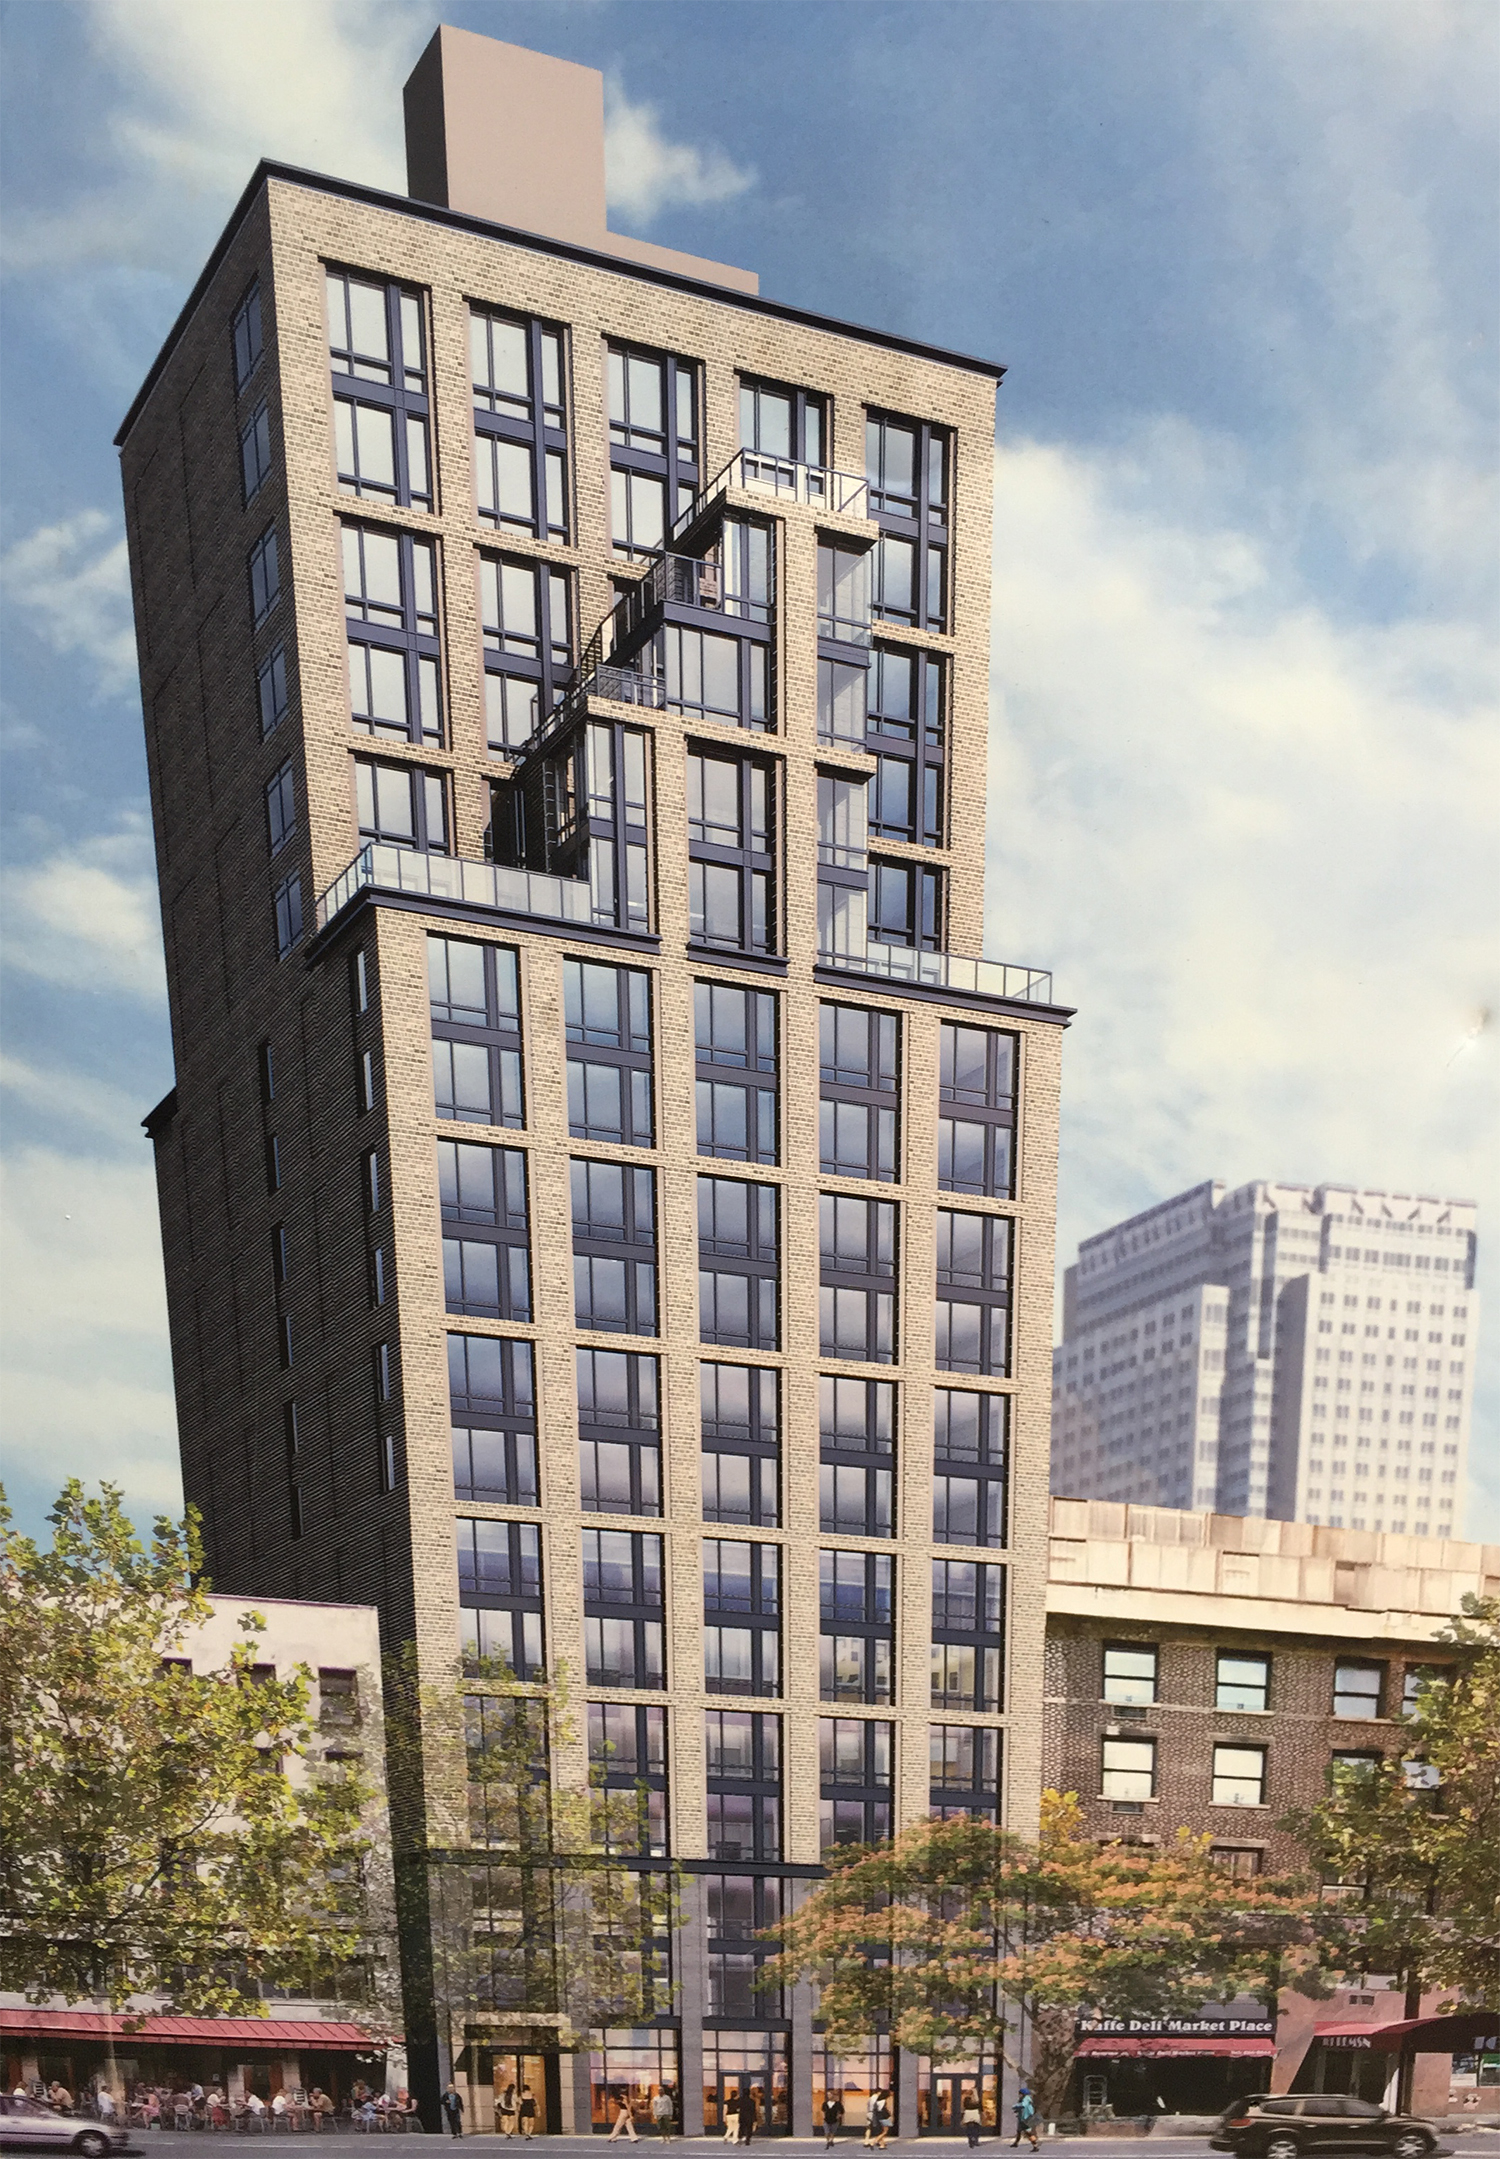 Rendering of 153 Remsen Street posted on-site. Photo by Tectonic.